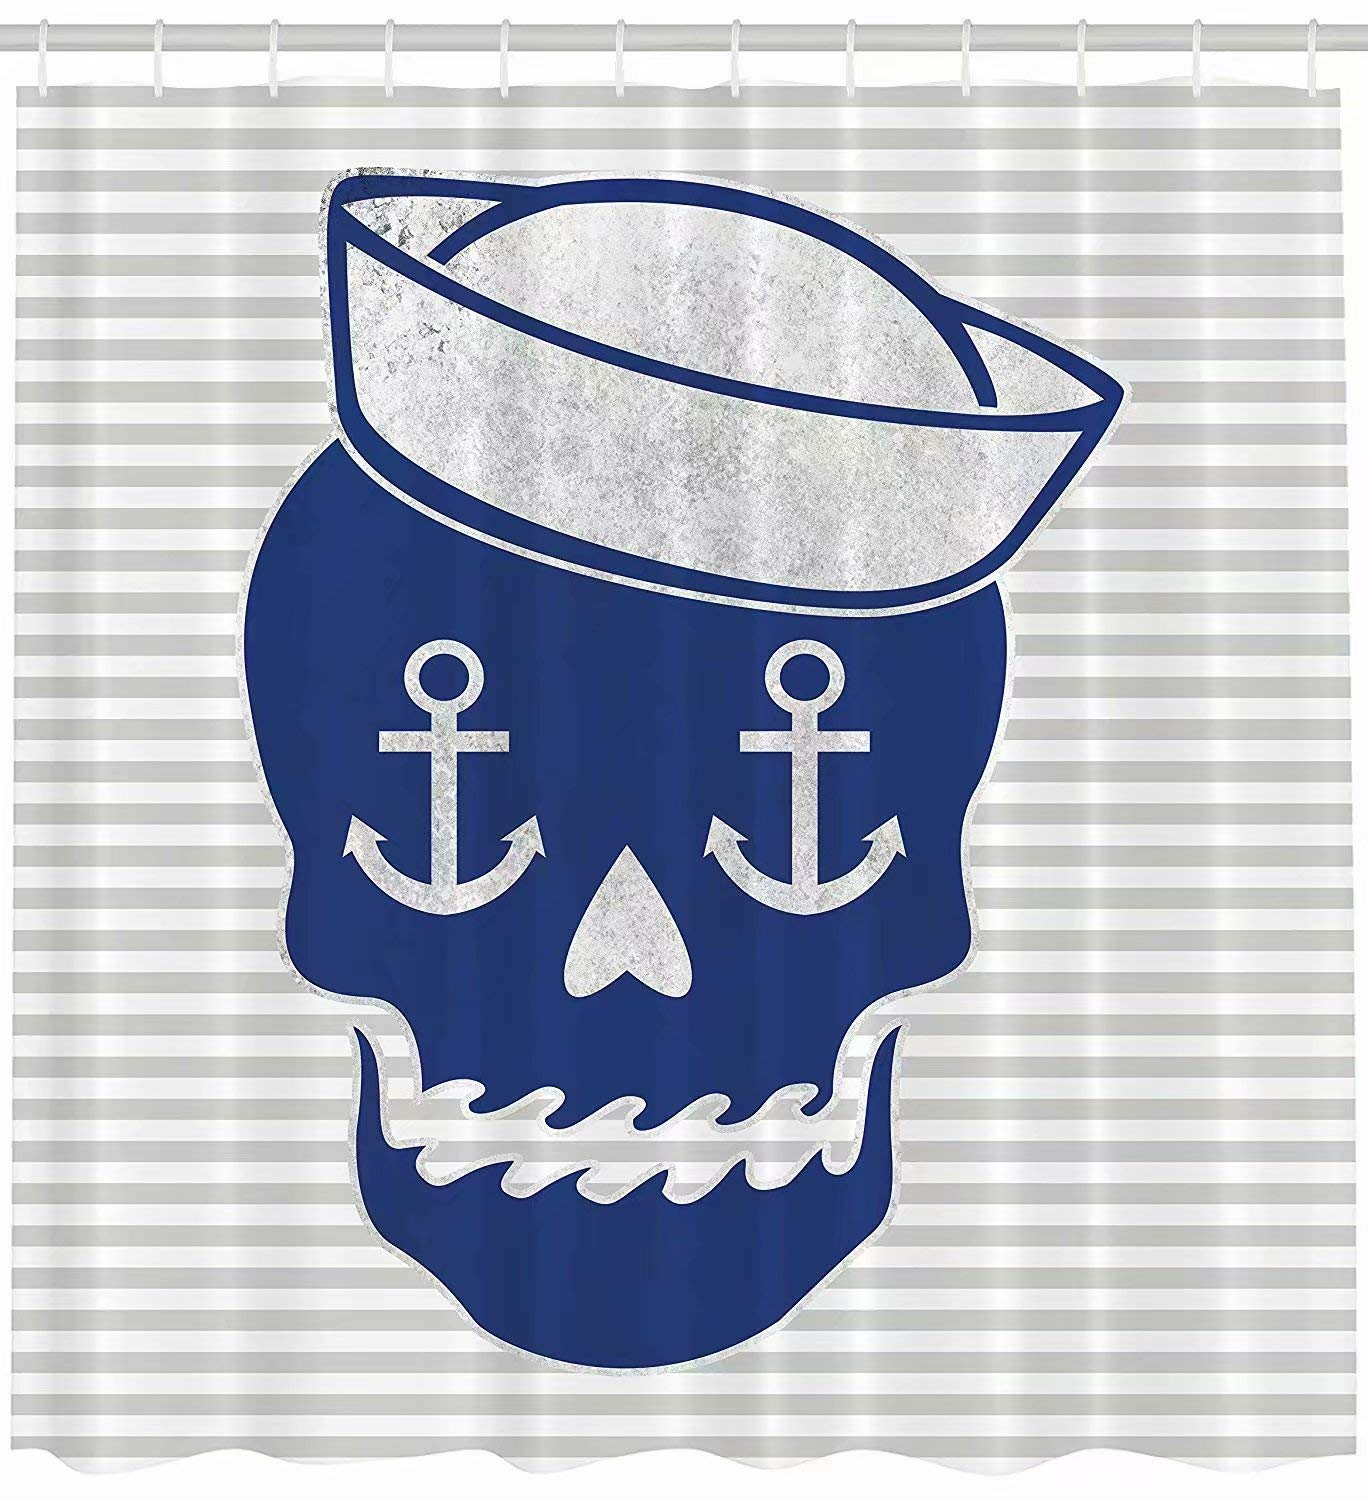 KANATSIU Sailor Cap Skull Bones Anchor Gray Striped Heart Nose Artistic Pattern Shower Curtain,with 12 plactic hooks,100% Made of Polyester,Mildew Resistant & Machine Washable,Width x Height is 60x72